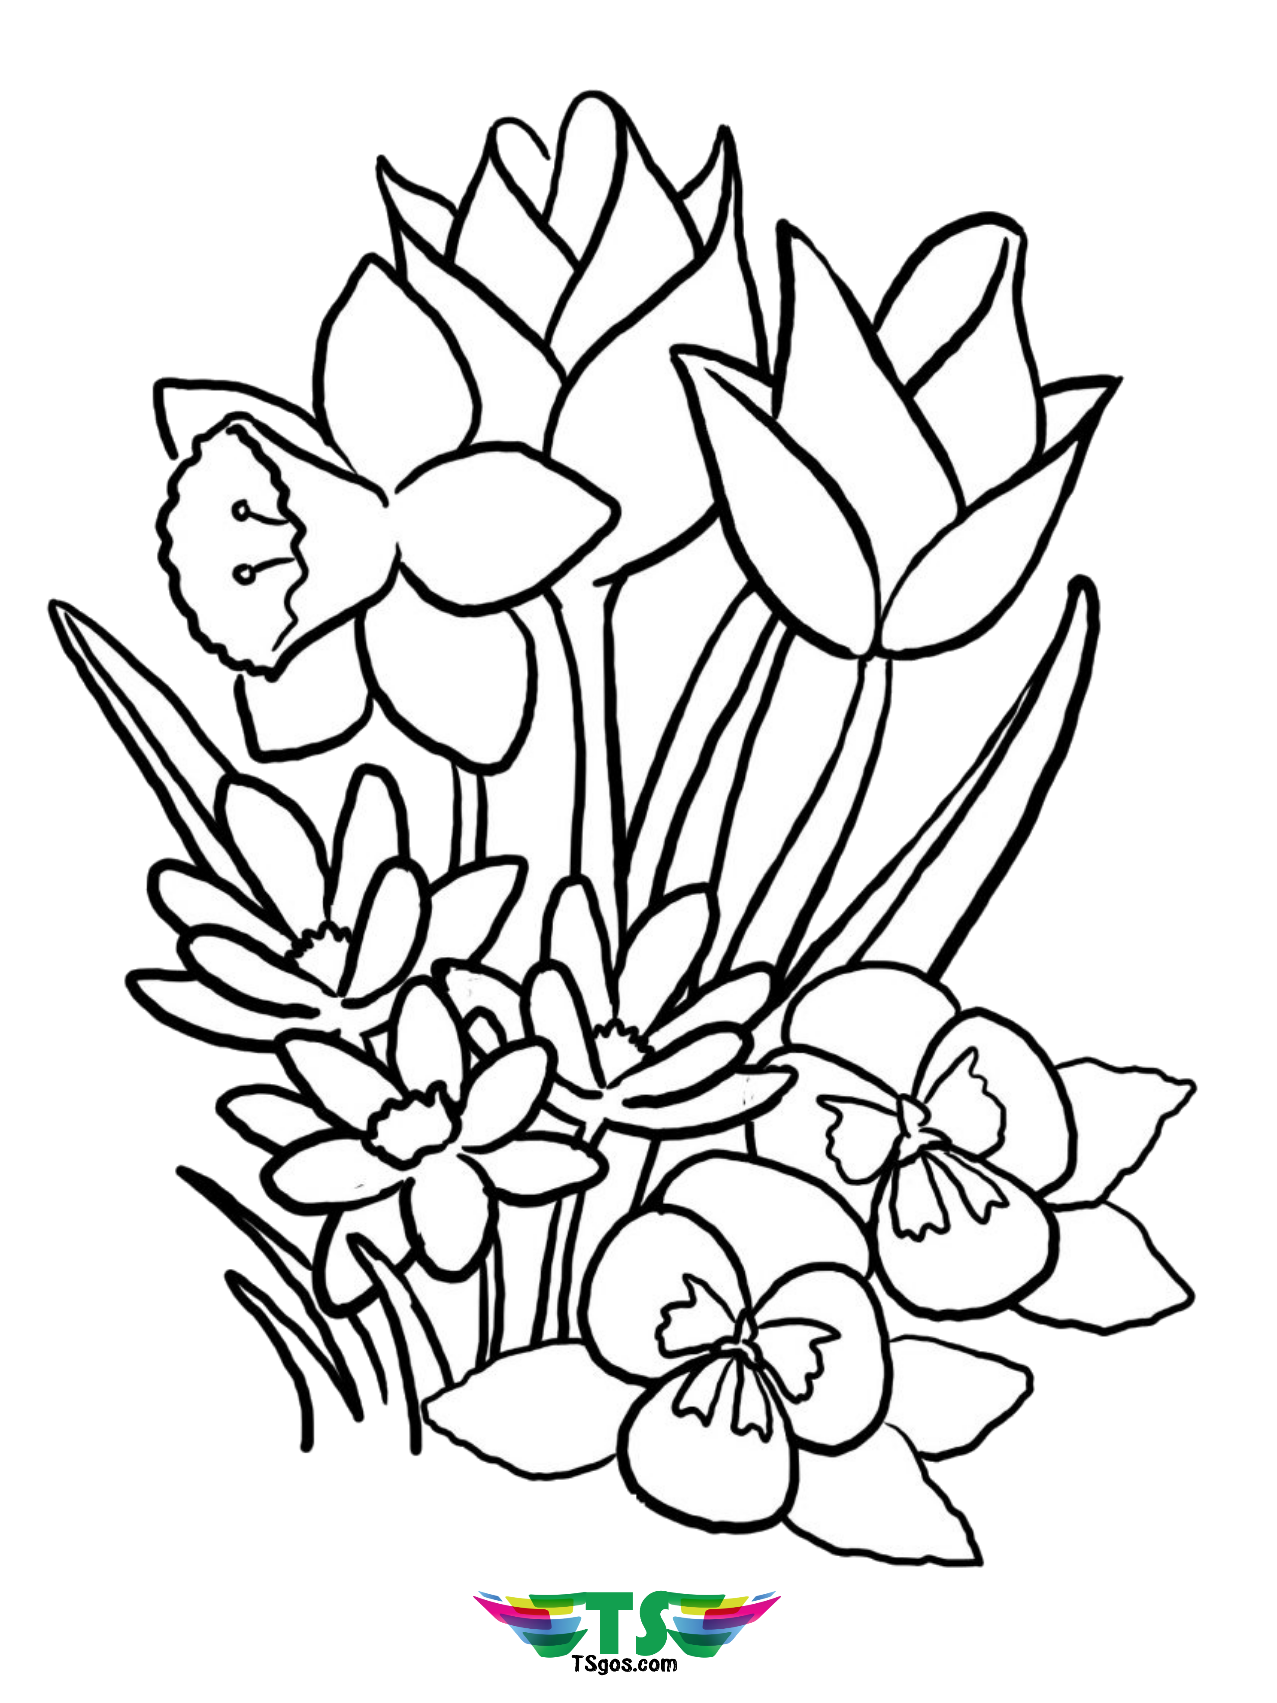 flower coloring pages to print free printable flower coloring pages for kids cool2bkids to print pages flower coloring